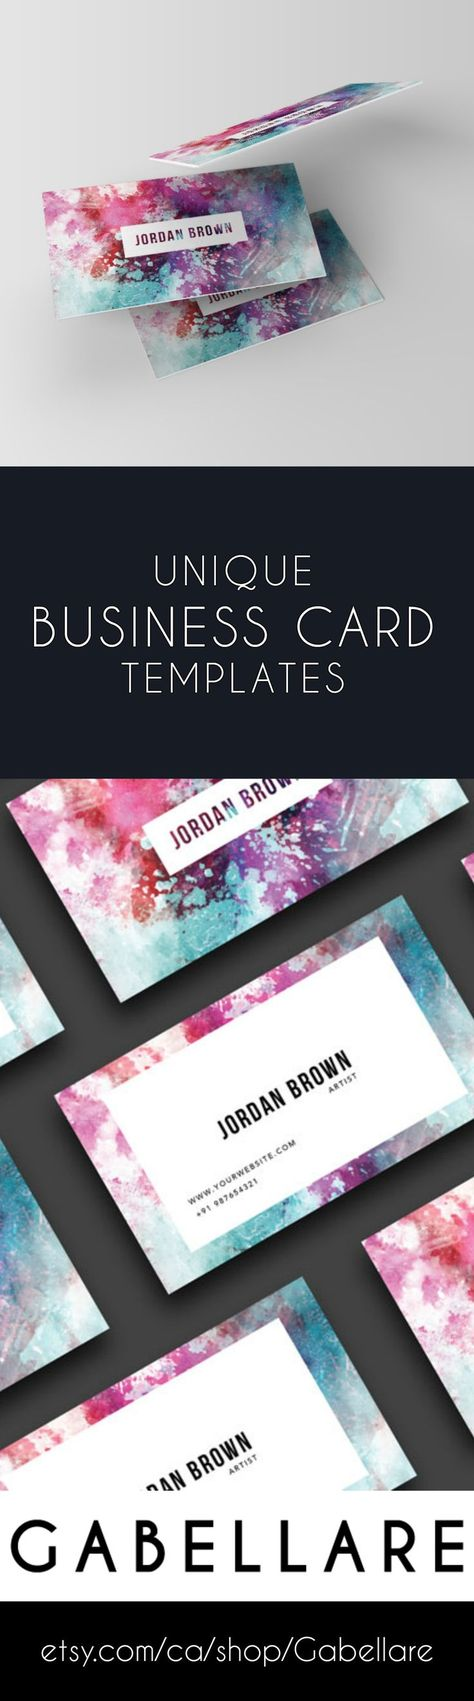 Branding Kit   Business Cards   Thank You Cards   Greeting Cards   Graphic Design   Custom Business Card   Personalized Business Card